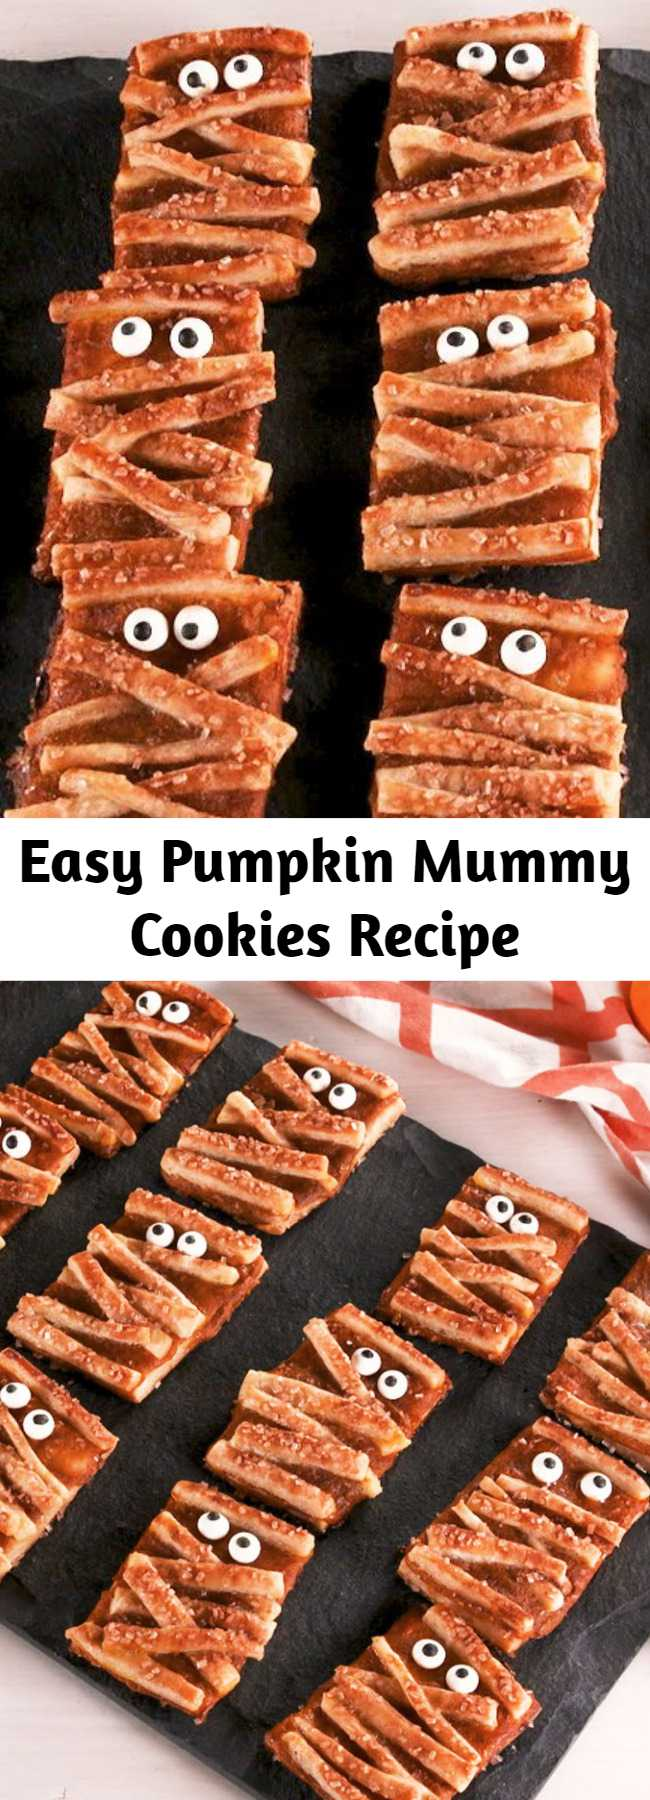 """Easy Pumpkin Mummy Cookies Recipe - These adorable """"cookies"""" are basically mini pumpkin pies. Pumpkin Mummy Cookies from Delish.com are so adorable, you'll be screaming with joy this Halloween."""